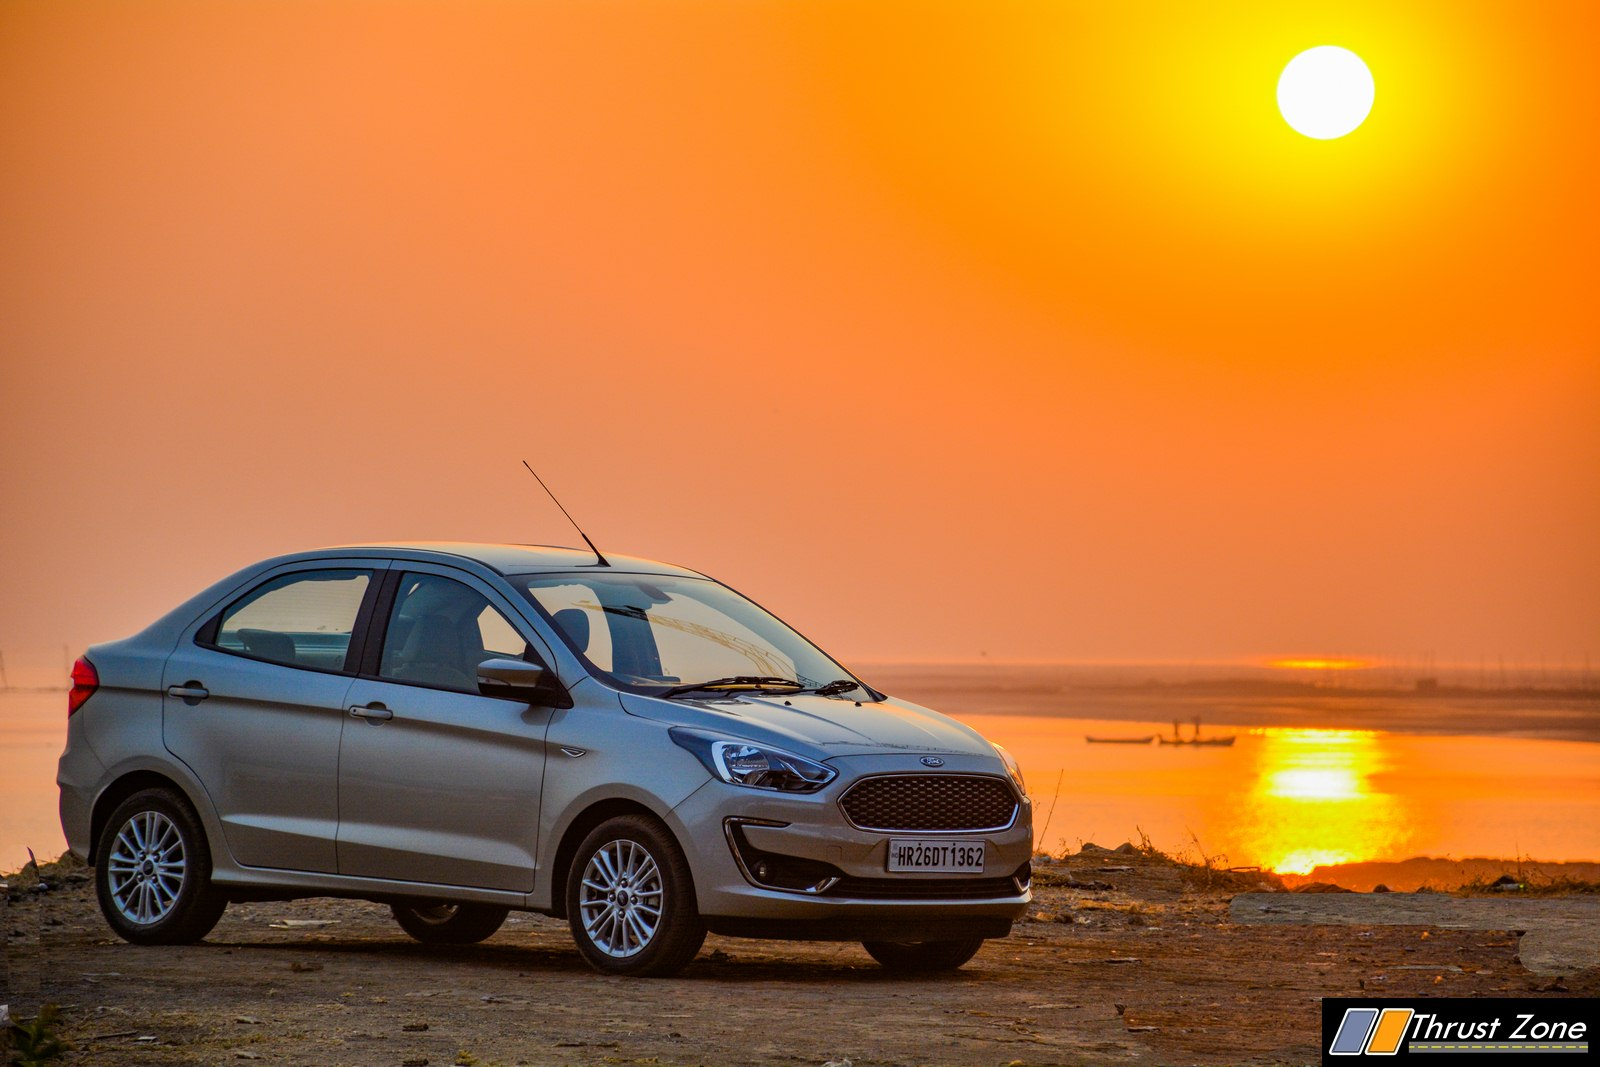 http://www.thrustzone.com/wp-content/uploads/2019/01/2018-Ford-Aspire-Diesel-Review-Road-Test-9-9.jpg